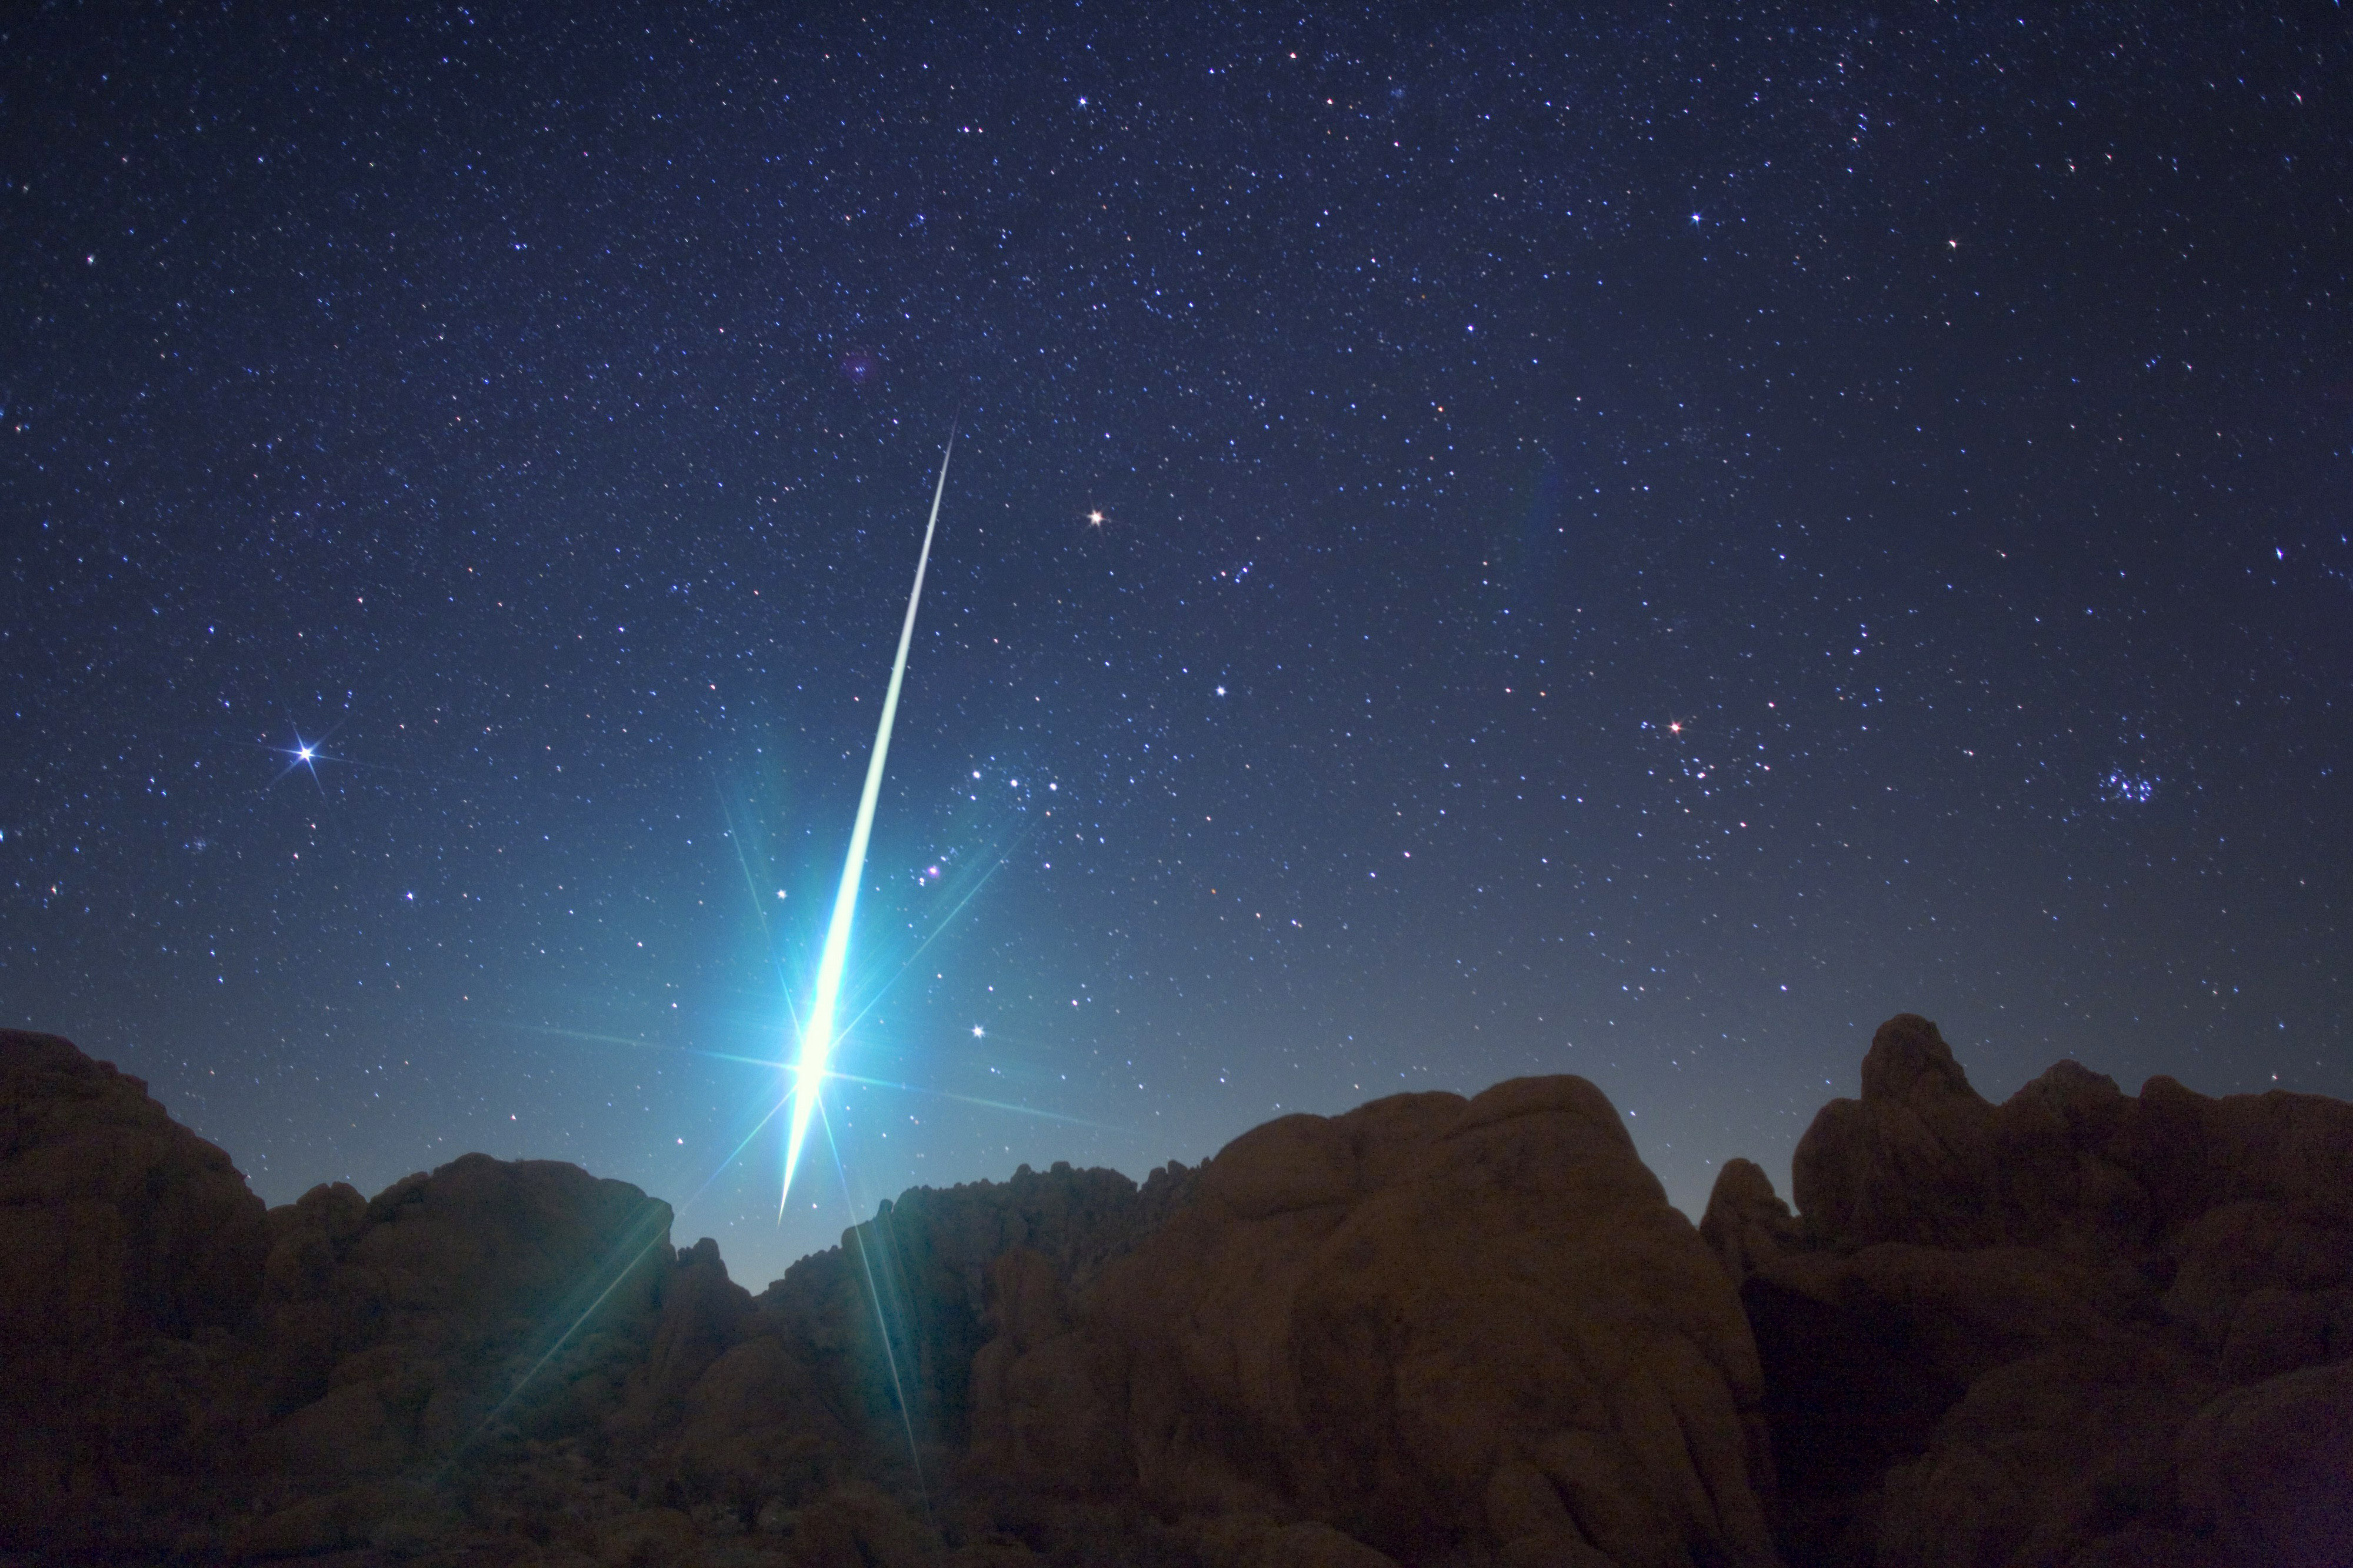 A meteor hurtling to earth during the annual Geminid meteor shower on December 14, 2009.